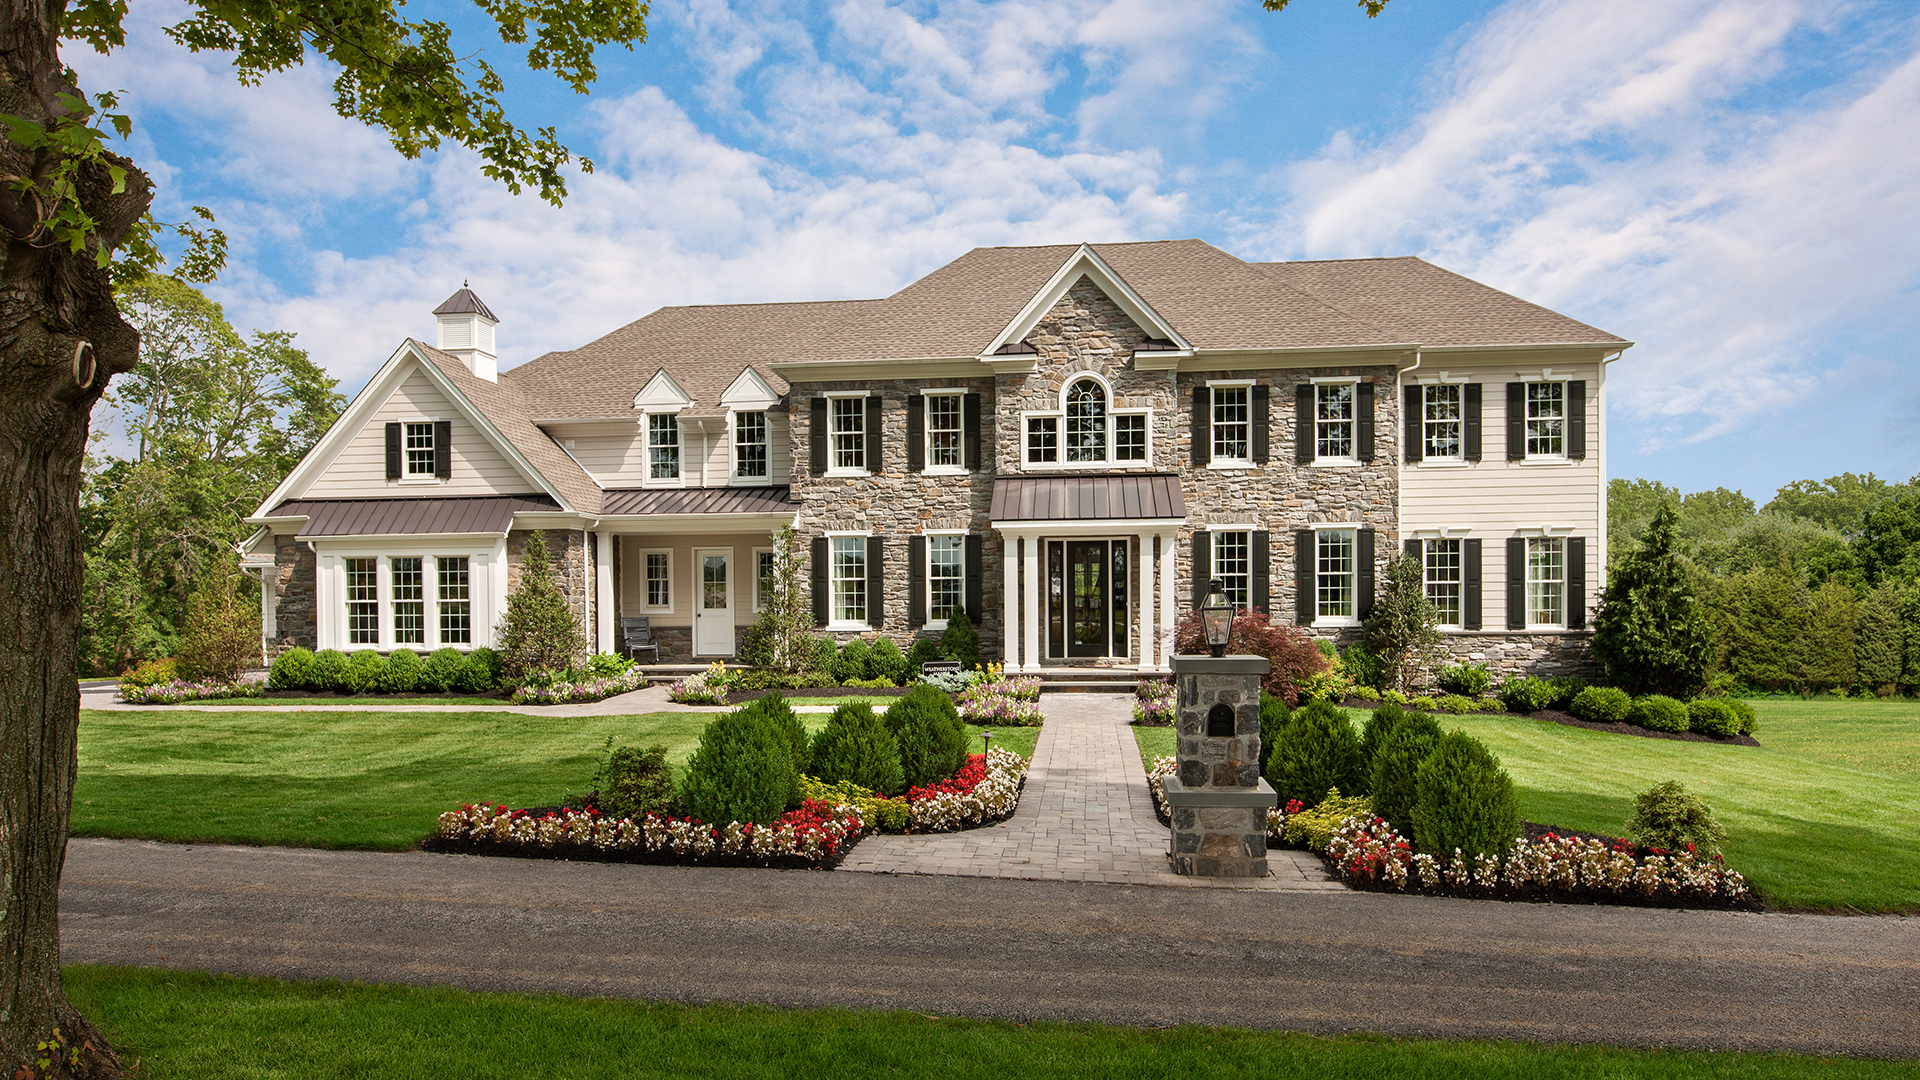 New luxury homes for sale in newtown square pa liseter for Luxury home collection